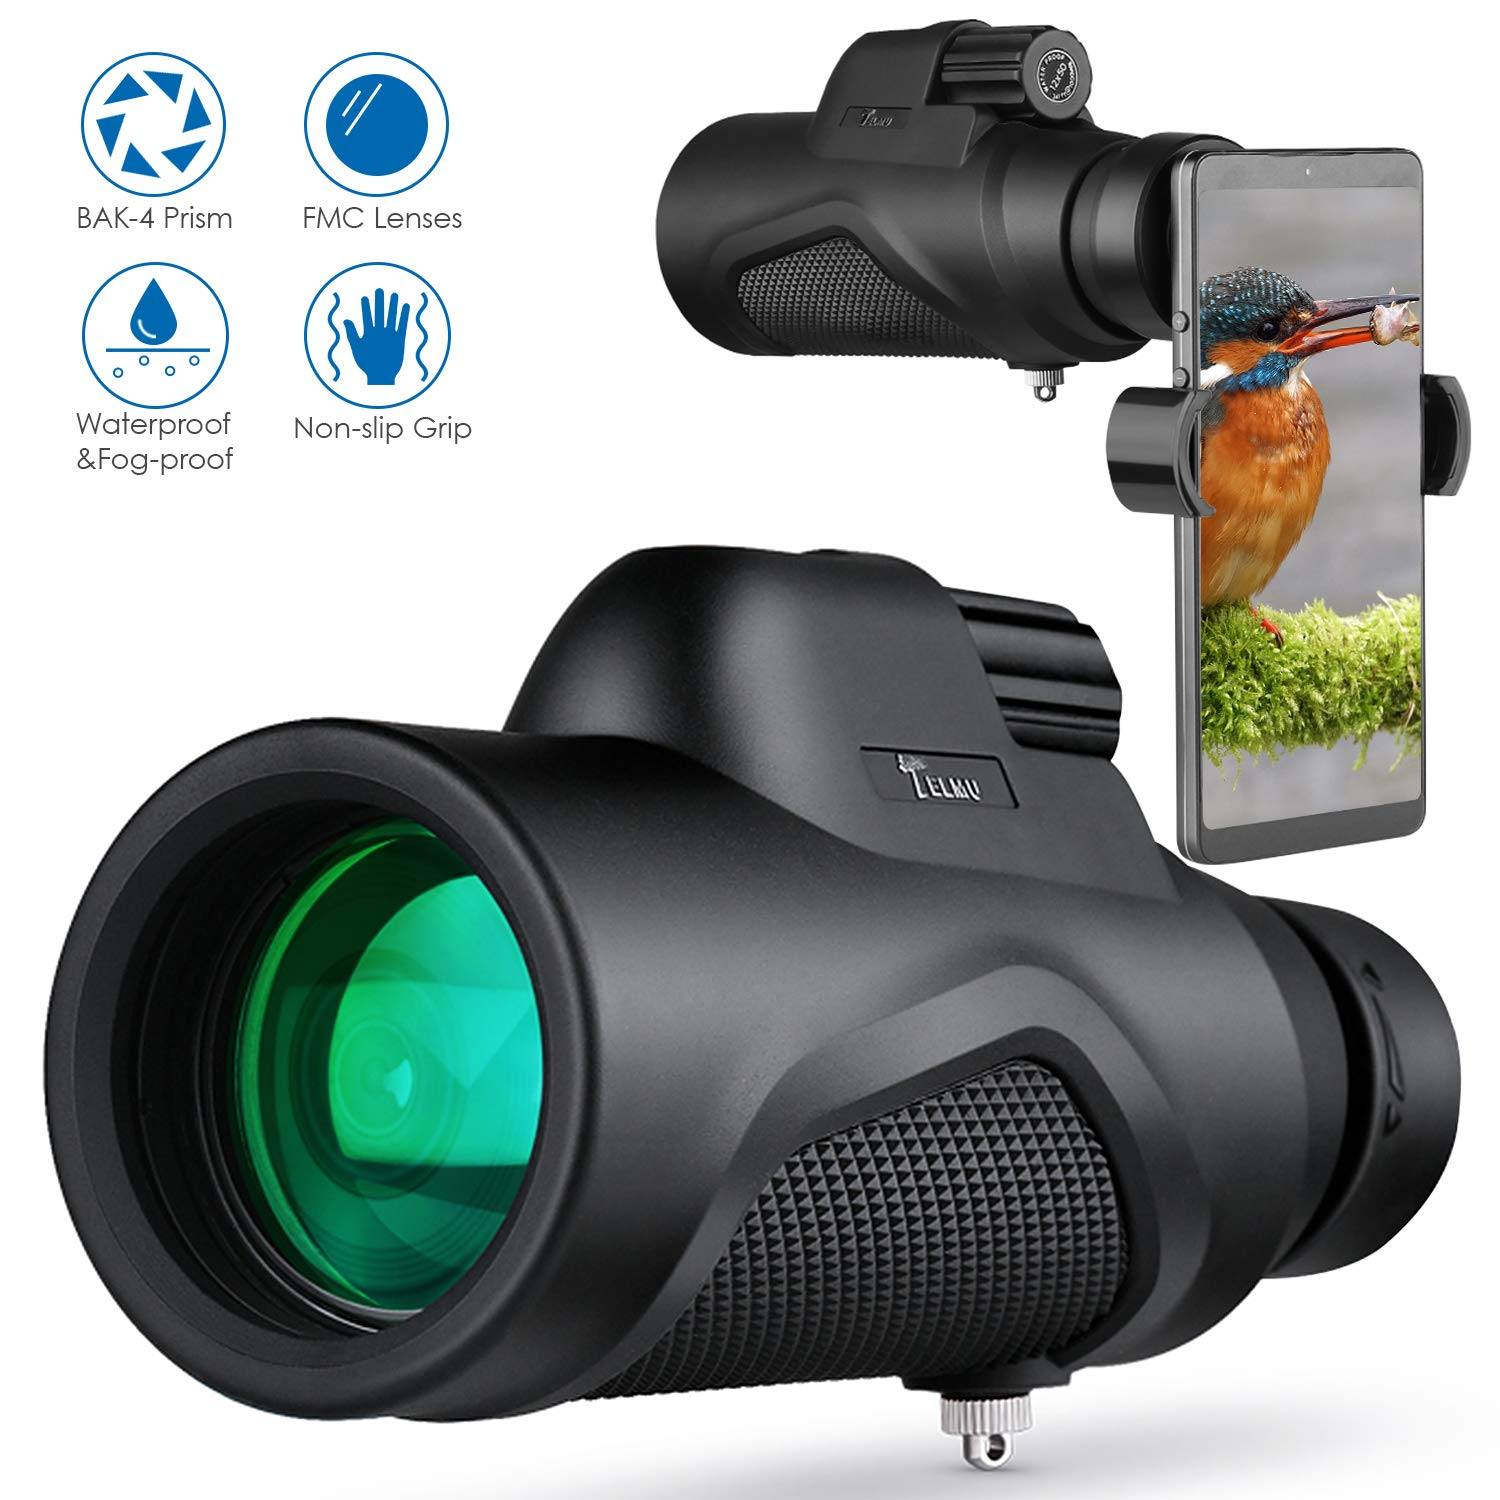 TELMU Monocular Telescope Lightweight for Bird Watching and Concerts Viewing, Hunting, Camping, High Powered 12X50 with BAK-4 Prism and FMC Objective Lens by TELMU